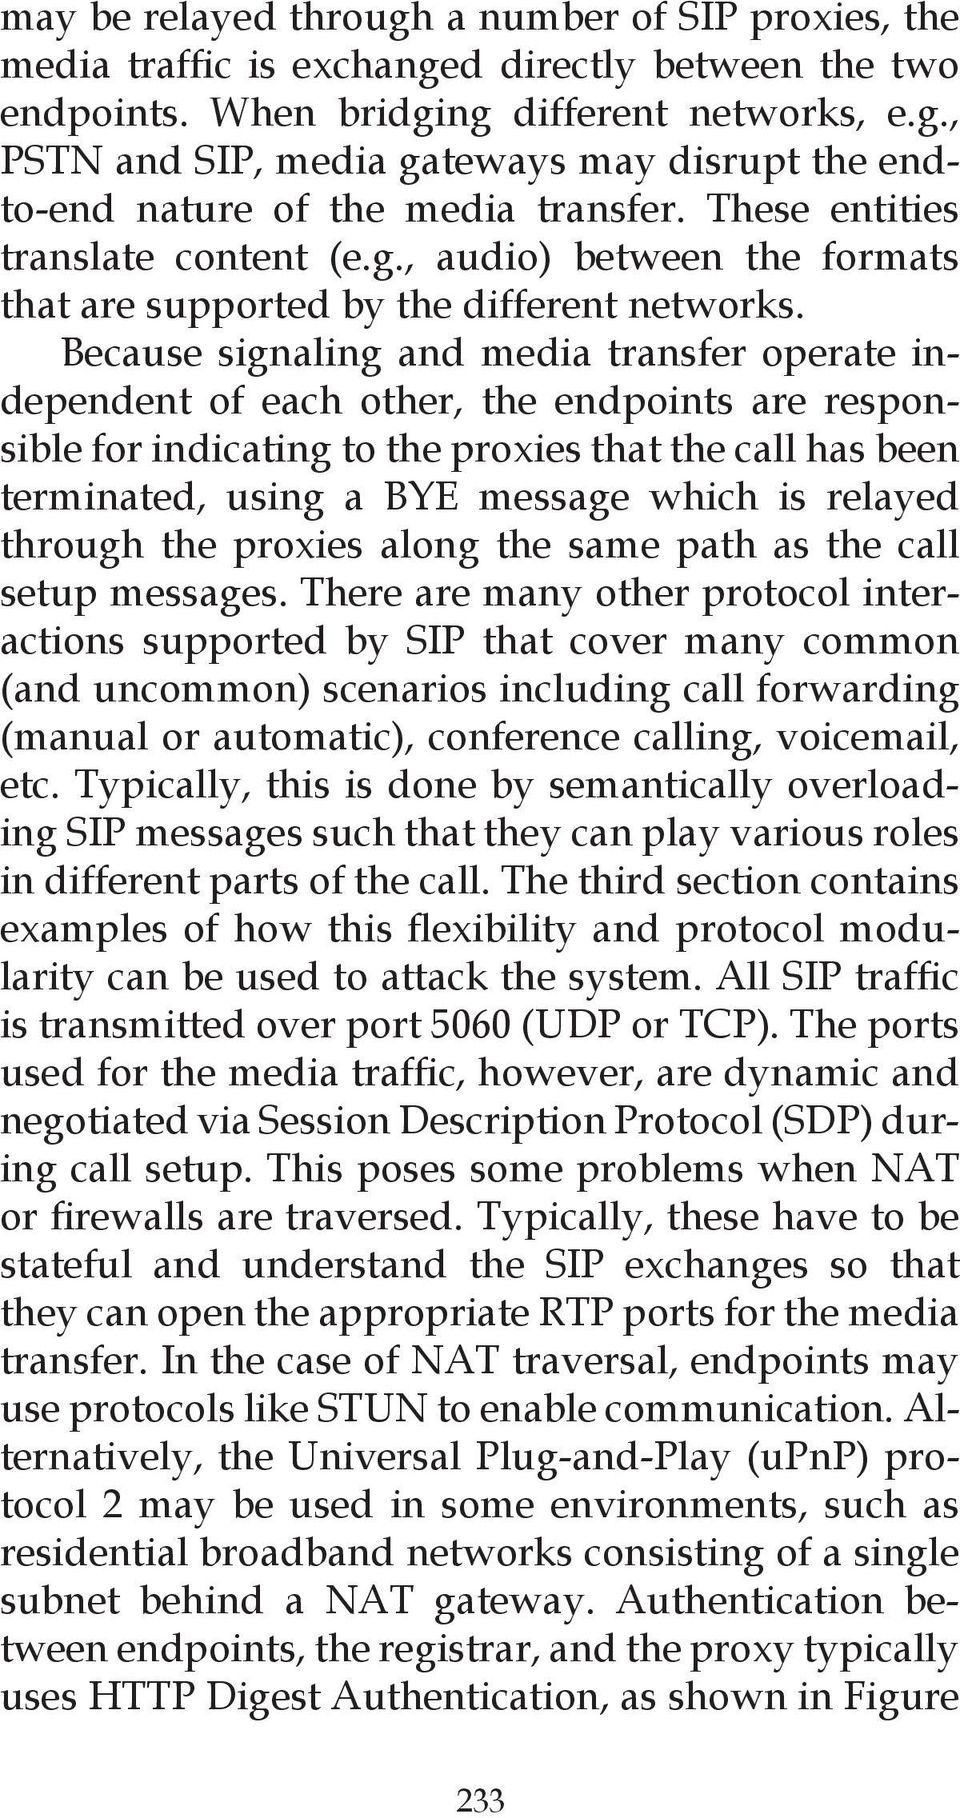 Because signaling and media transfer operate independent of each other, the endpoints are responsible for indicating to the proxies that the call has been terminated, using a BYE message which is